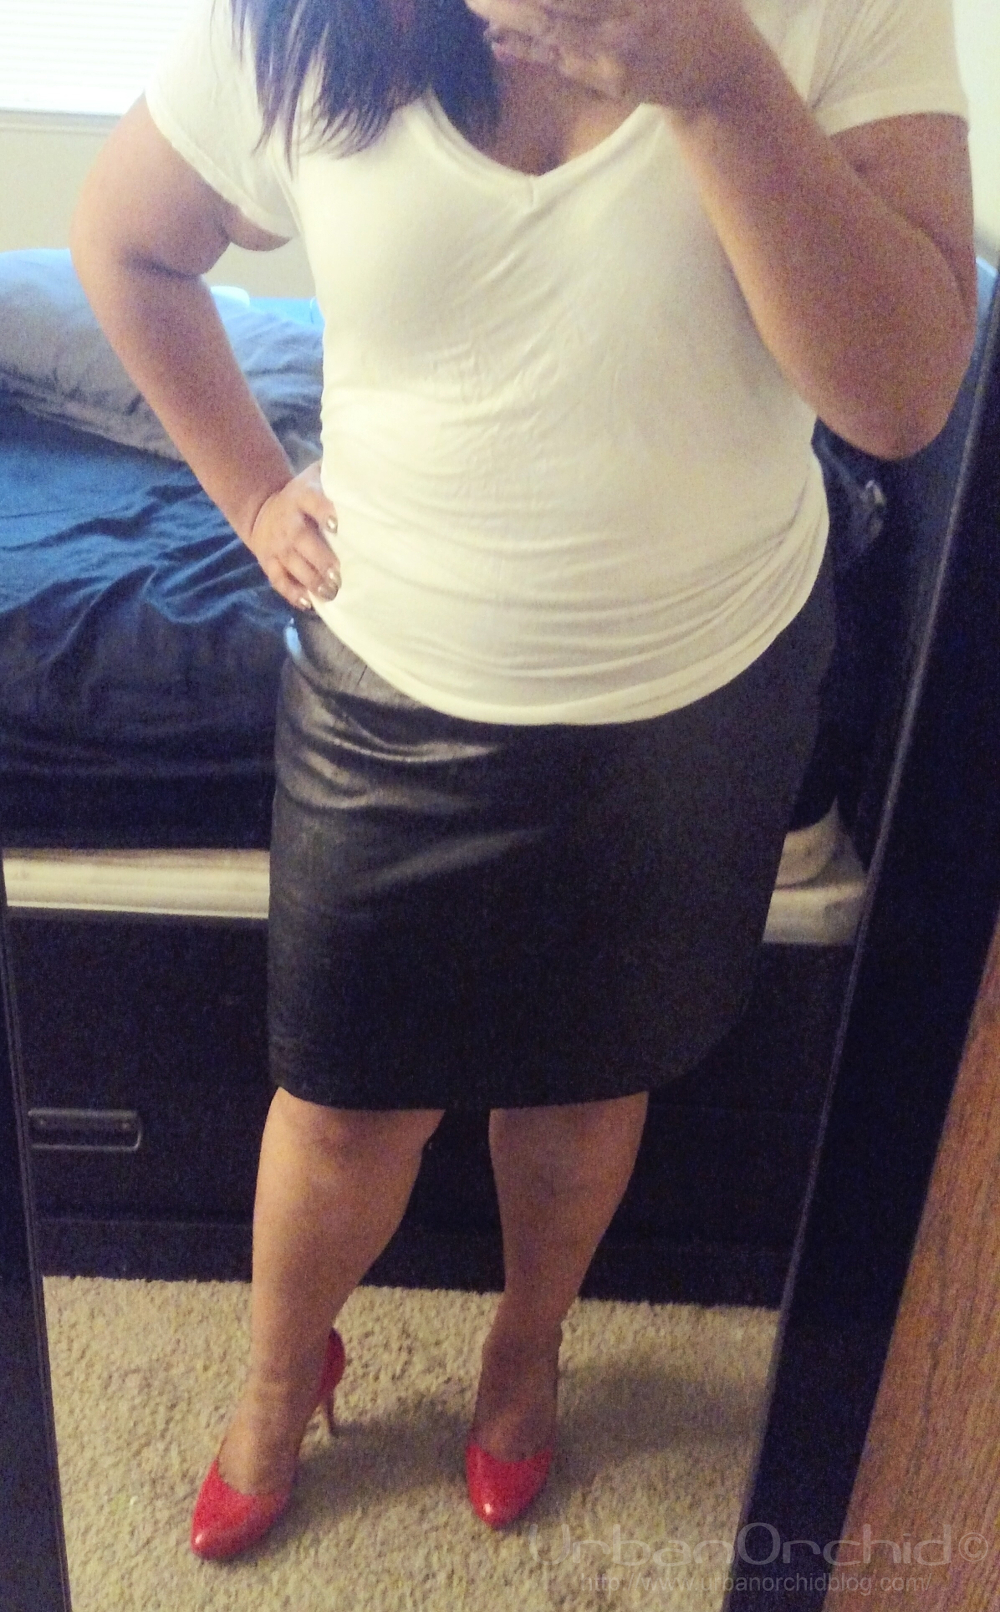 Pleather skirt by Venezia Jeans I picked up at the Plus Size Pop Up.